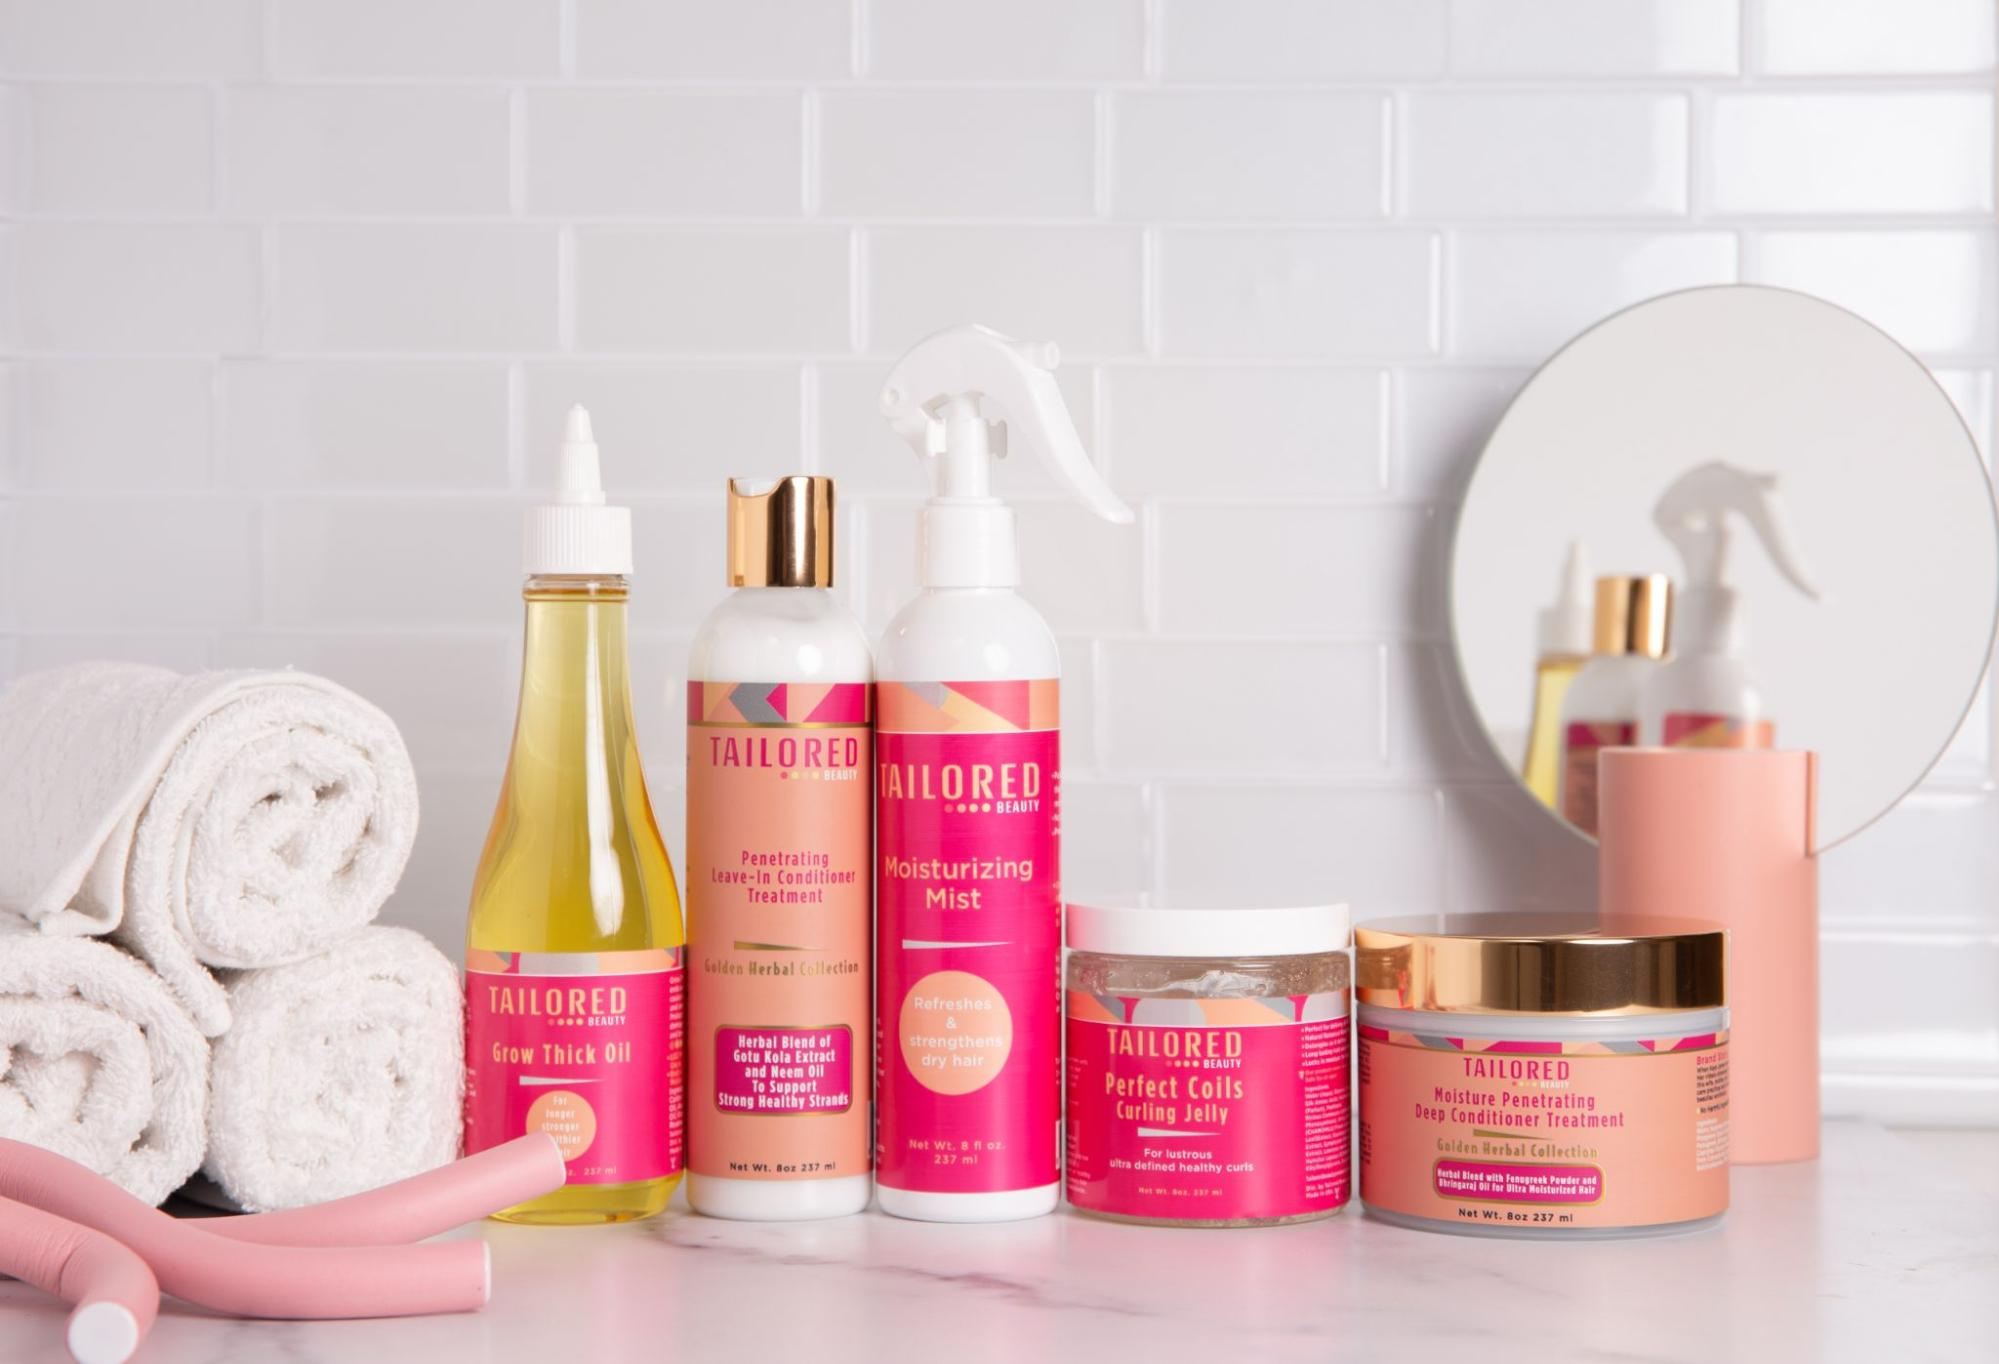 An array of Tailored Beauty products along with some towels, hair curlers, and a mirror.